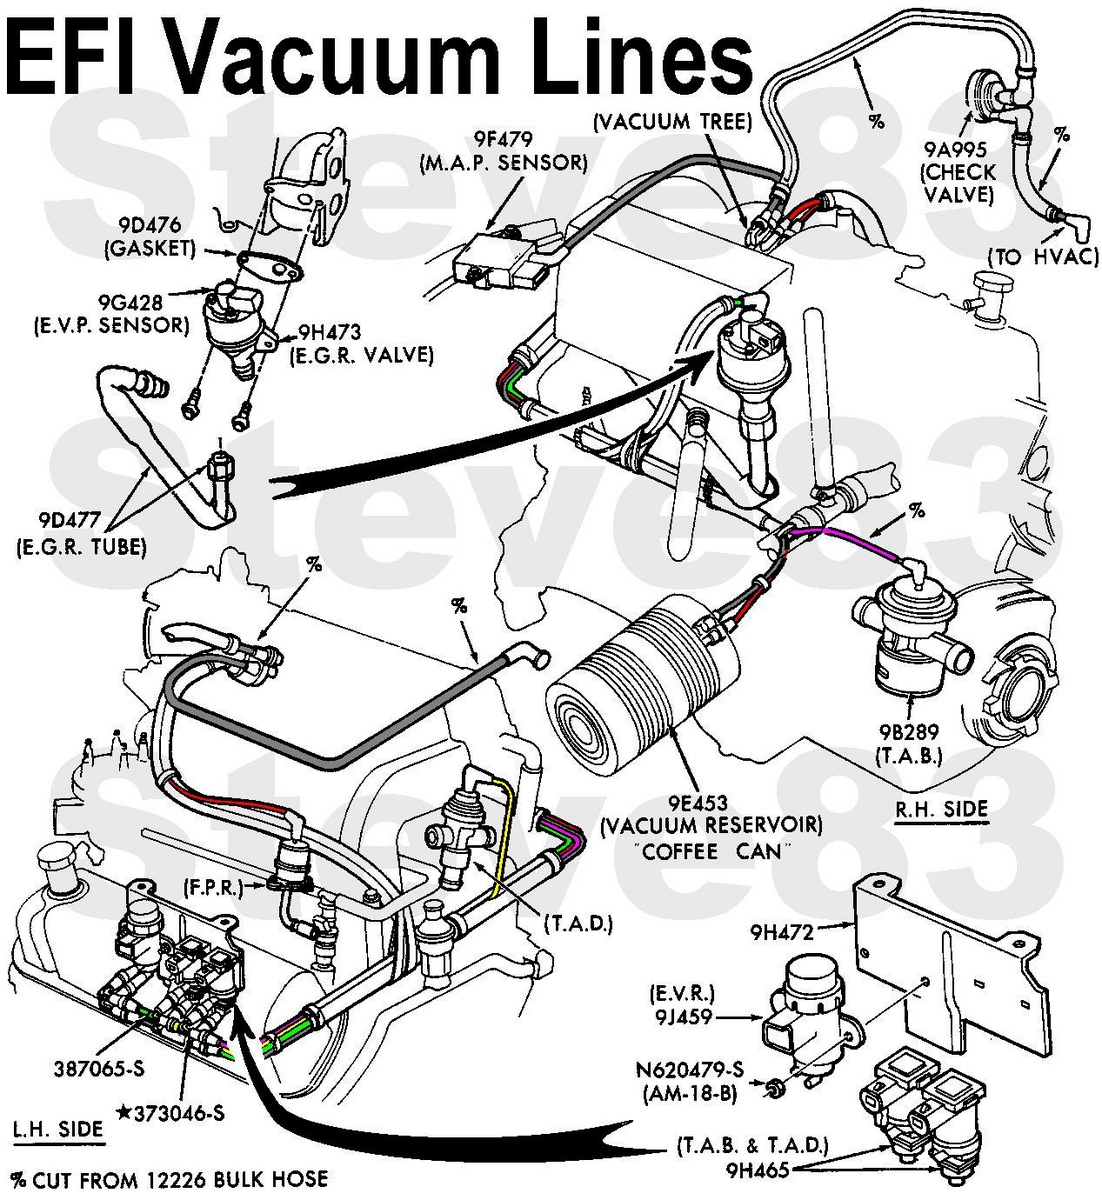 Ect Control Sensor On 2001 Chevy Monte Carlo Location also Steering Rack Replacement Cost furthermore Isuzu Trooper Vacuum Diagram besides 97 Explorer Fuel System Diagram as well P 0996b43f80cadd60. on 99 ford contour fuel tank